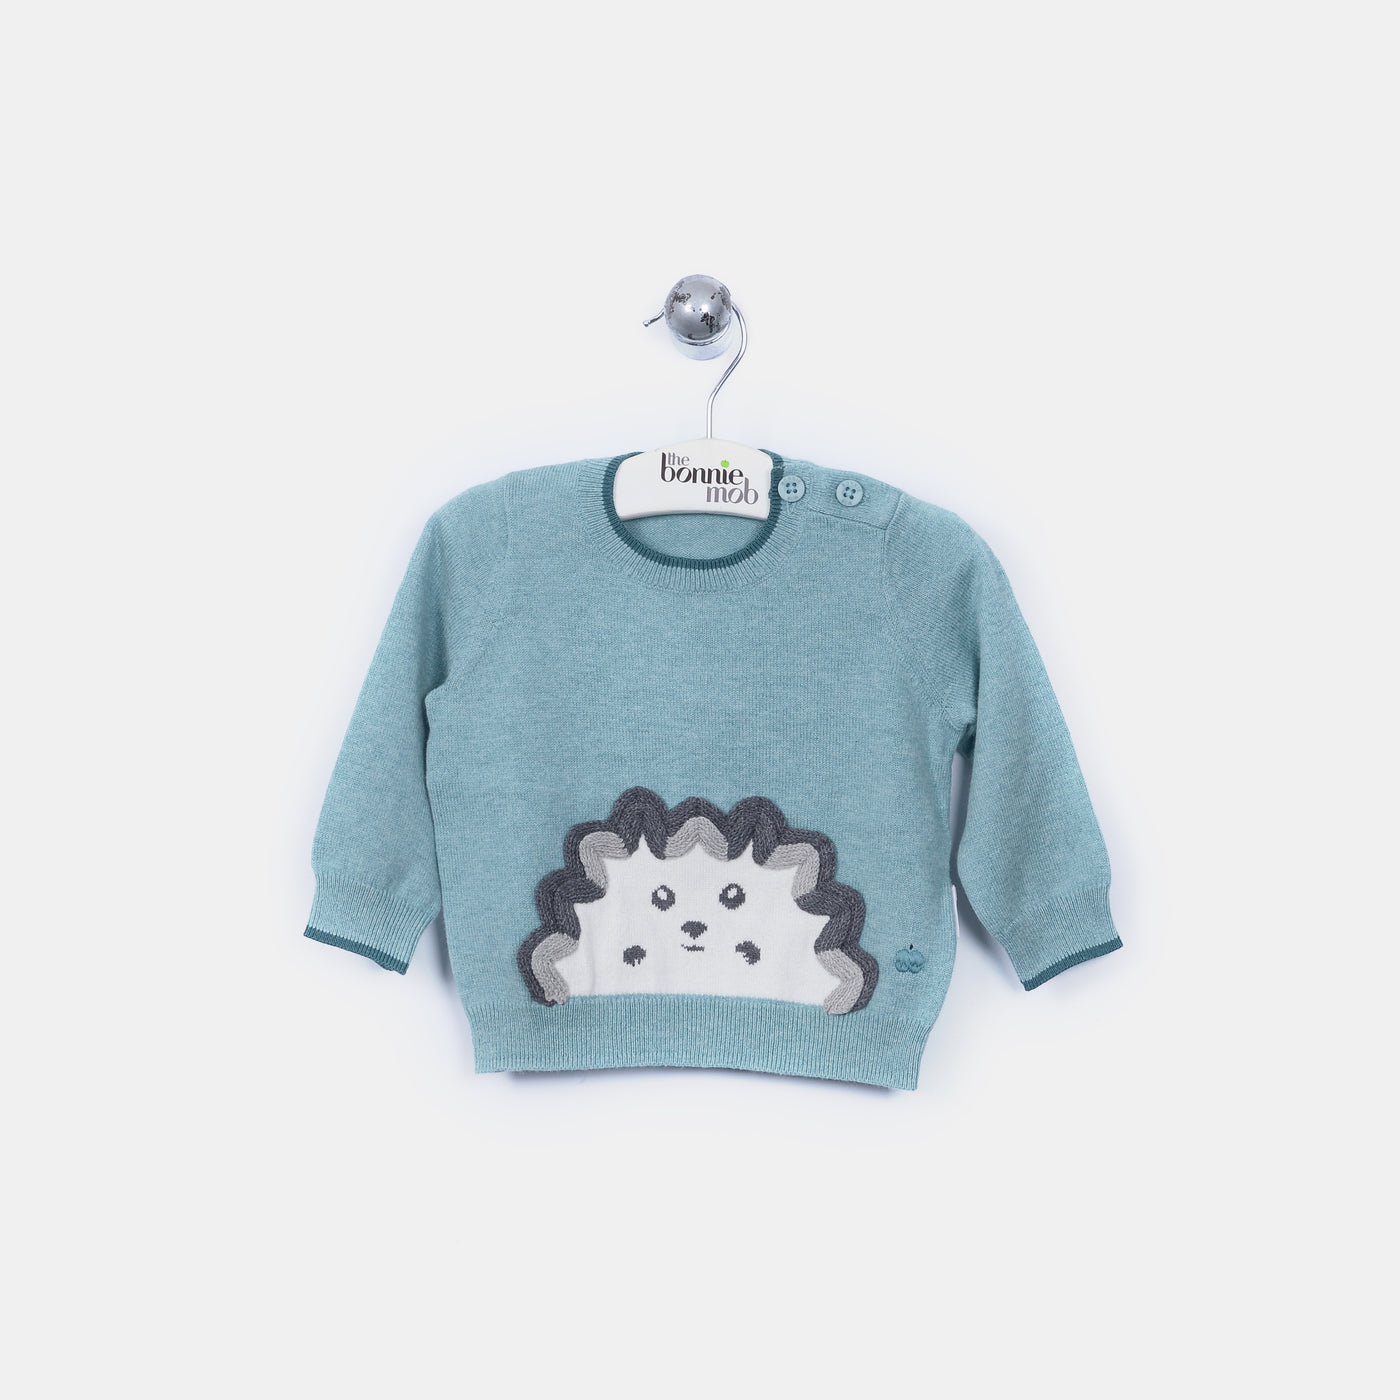 L-HARRY - Spikey Hedghog Jumper - Kids Boy - Cloudy jade